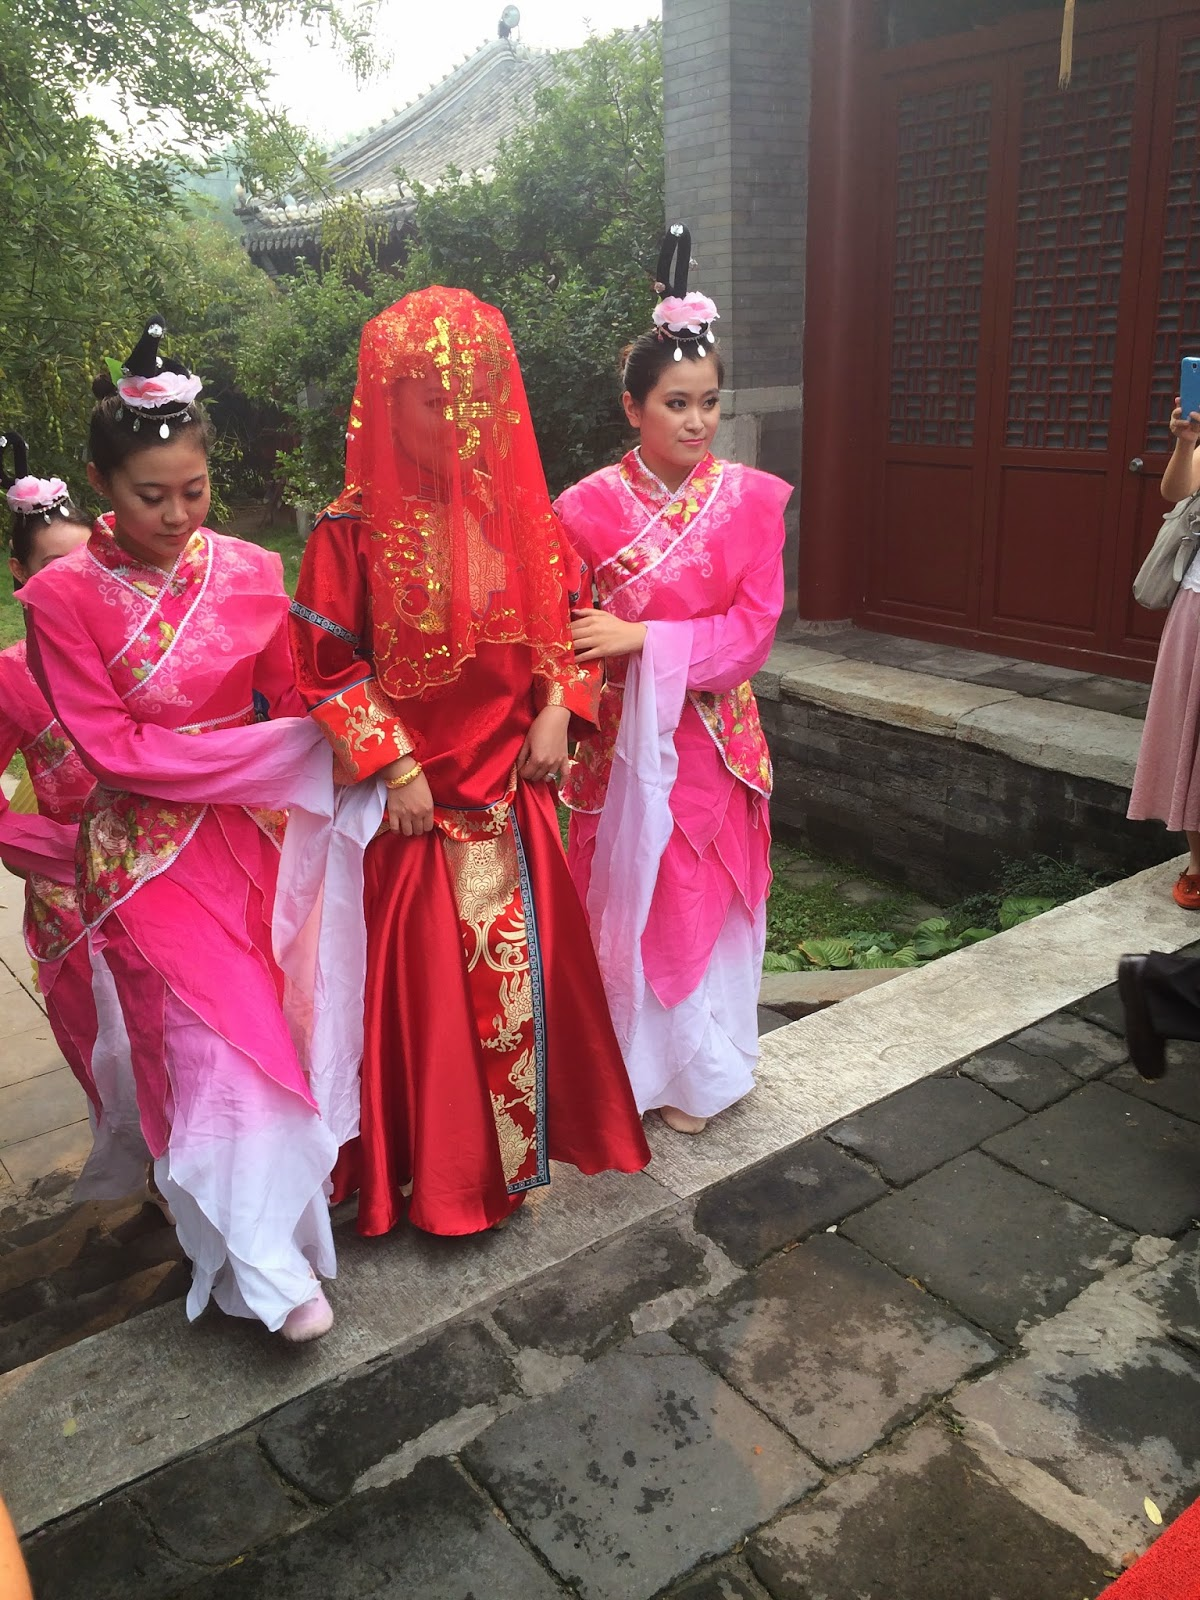 Traditional Chinese Wedding Ceremony - The ceremony itself involved the bride wearing an awesome cloak covered in peacock feathers too there wasn t any exchanging of vows but there were